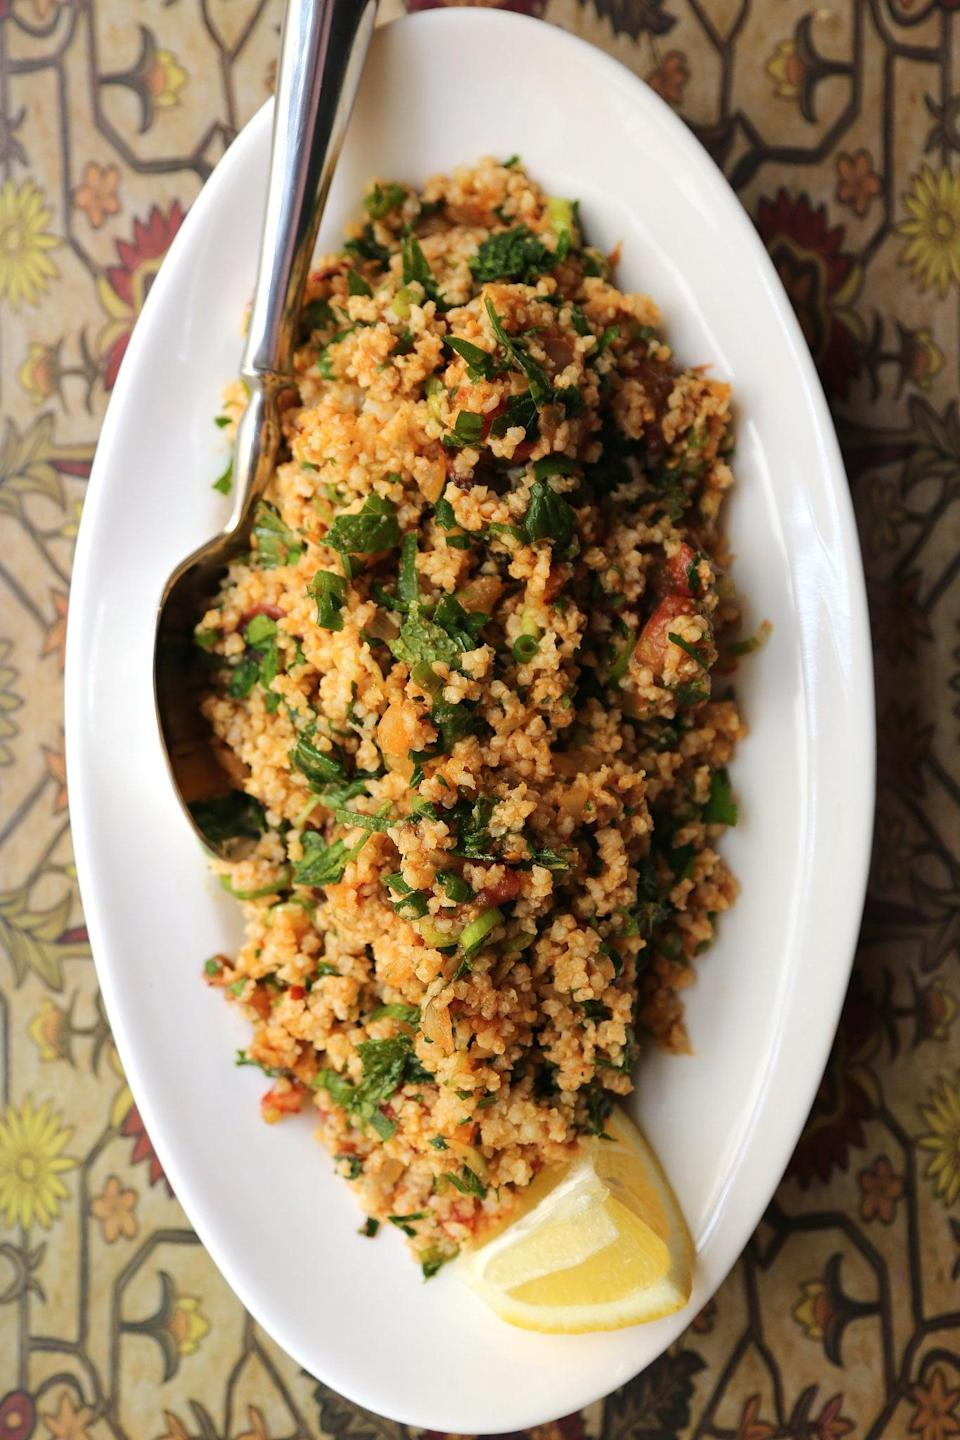 """<p>This <a href=""""https://www.popsugar.com/food/Fast-Easy-Healthy-Recipe-Quinoa-Tabbouleh-11137955"""" class=""""link rapid-noclick-resp"""" rel=""""nofollow noopener"""" target=""""_blank"""" data-ylk=""""slk:quinoa tabbouleh"""">quinoa tabbouleh</a> is quick, easy, and flavorful. It also tastes great when served either hot or cold.</p>"""